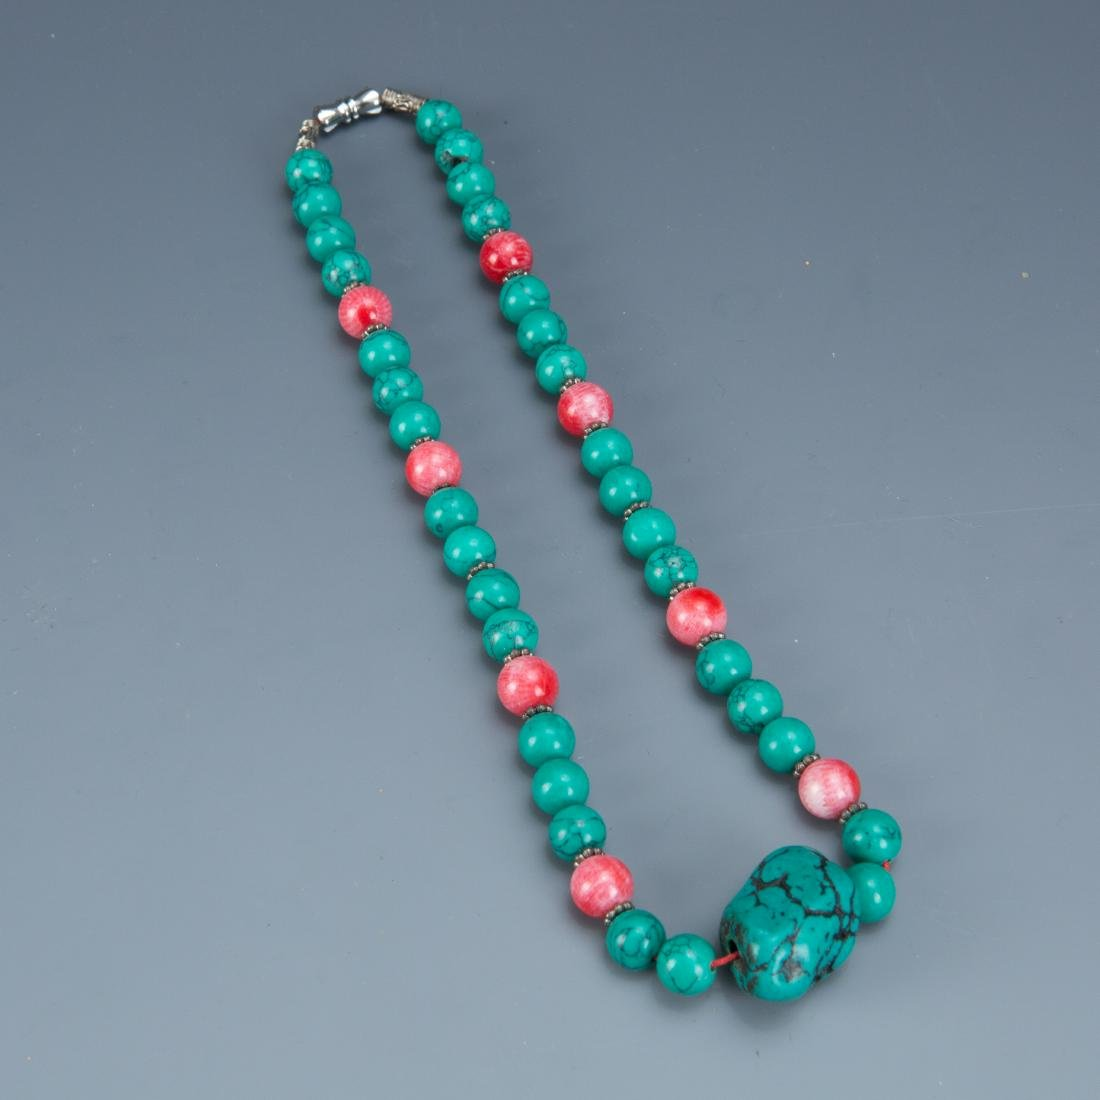 Estate Sale: Group of Glass Necklaces and Bracelets - 3